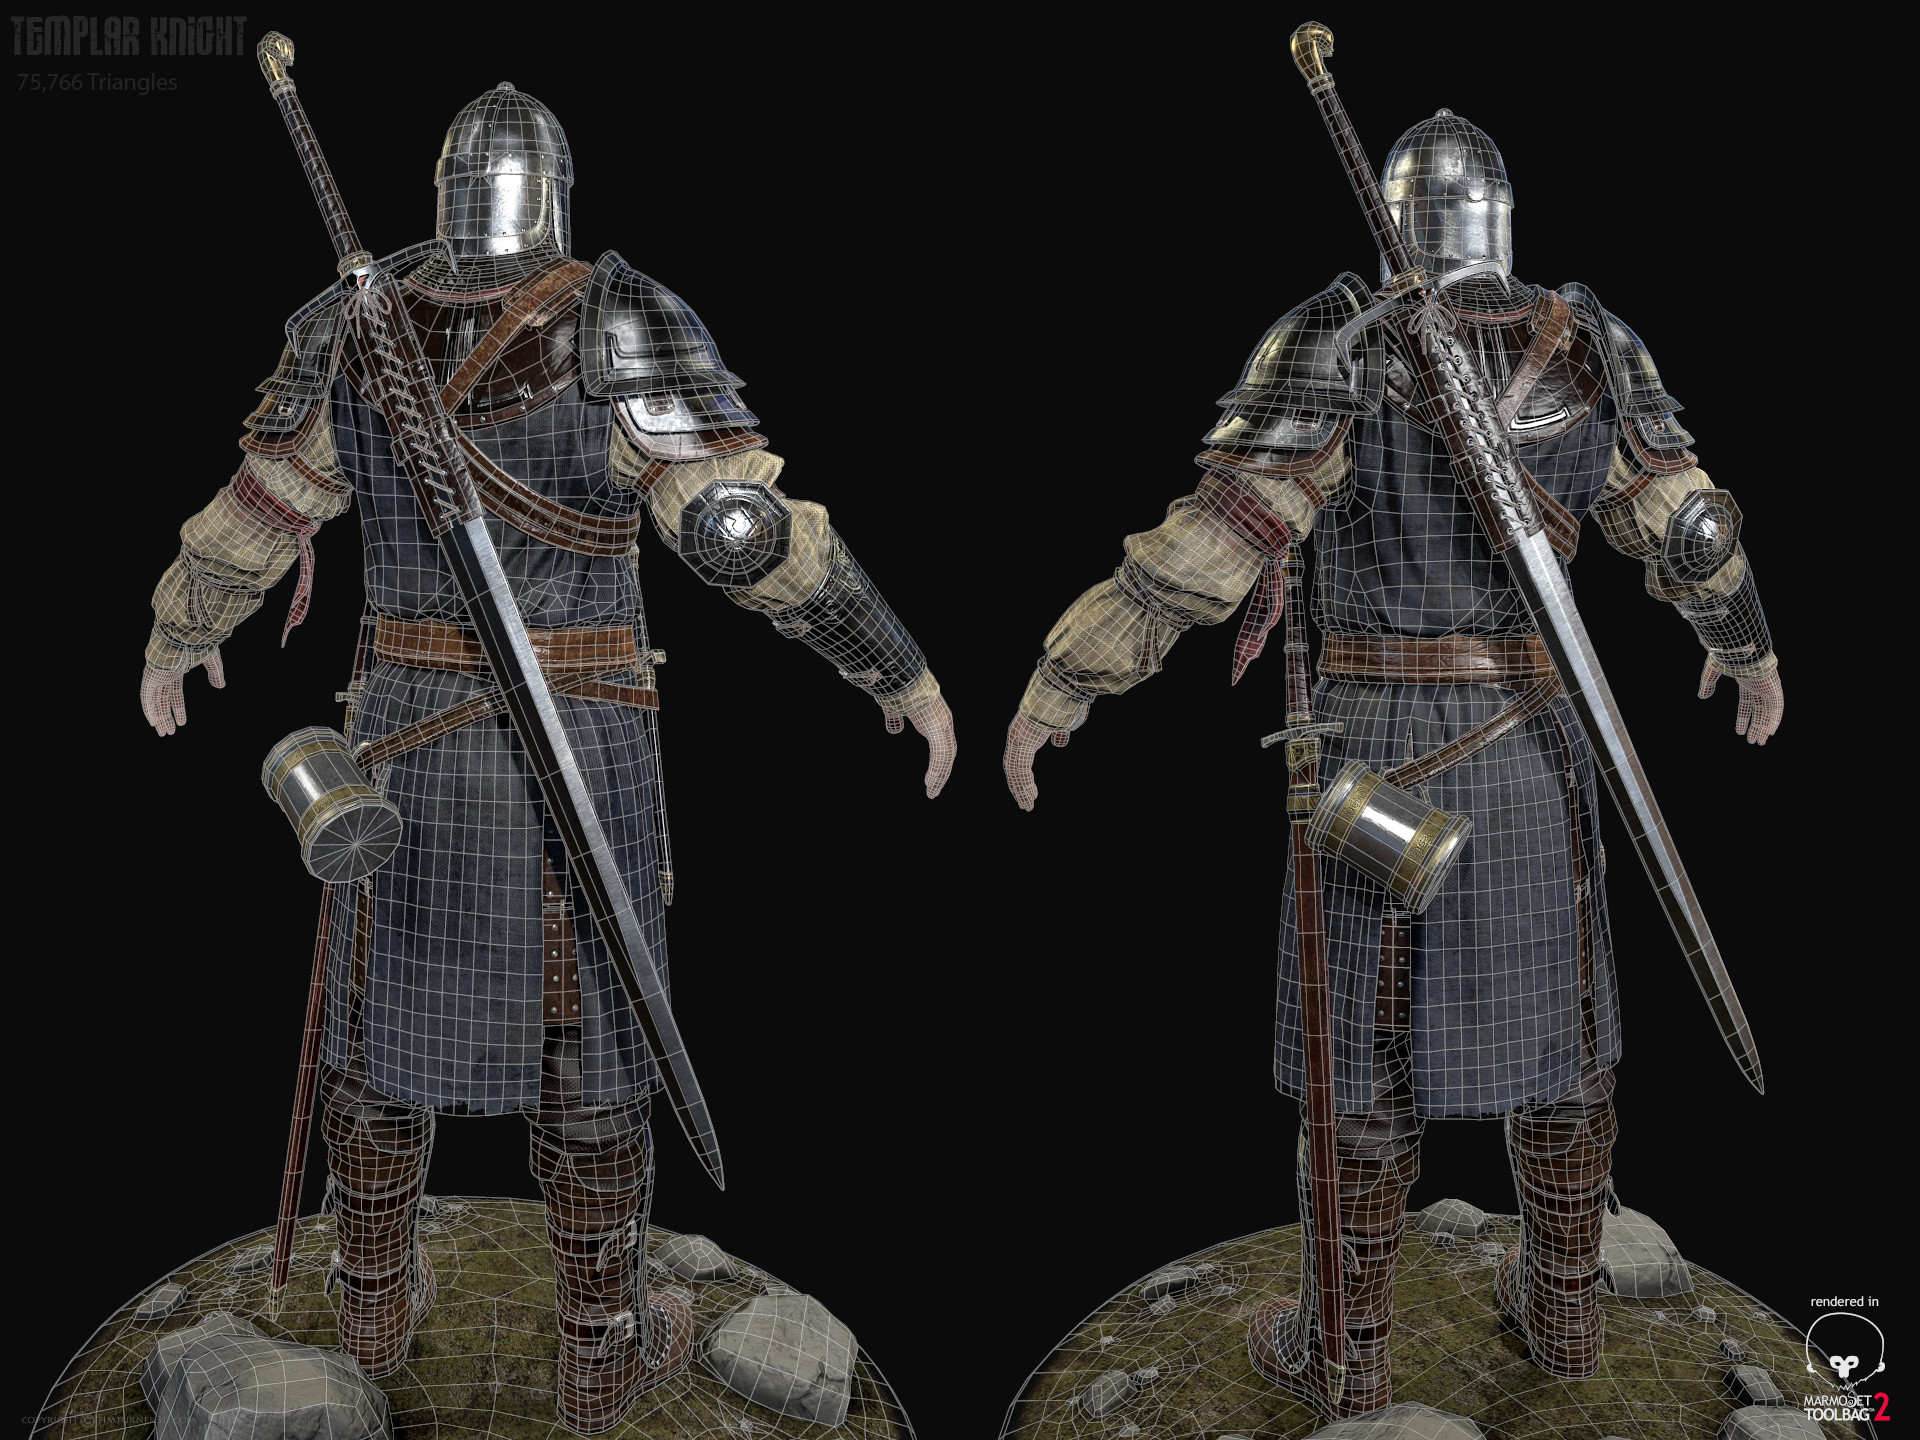 Tim turner 3d templar knight back view wireframe